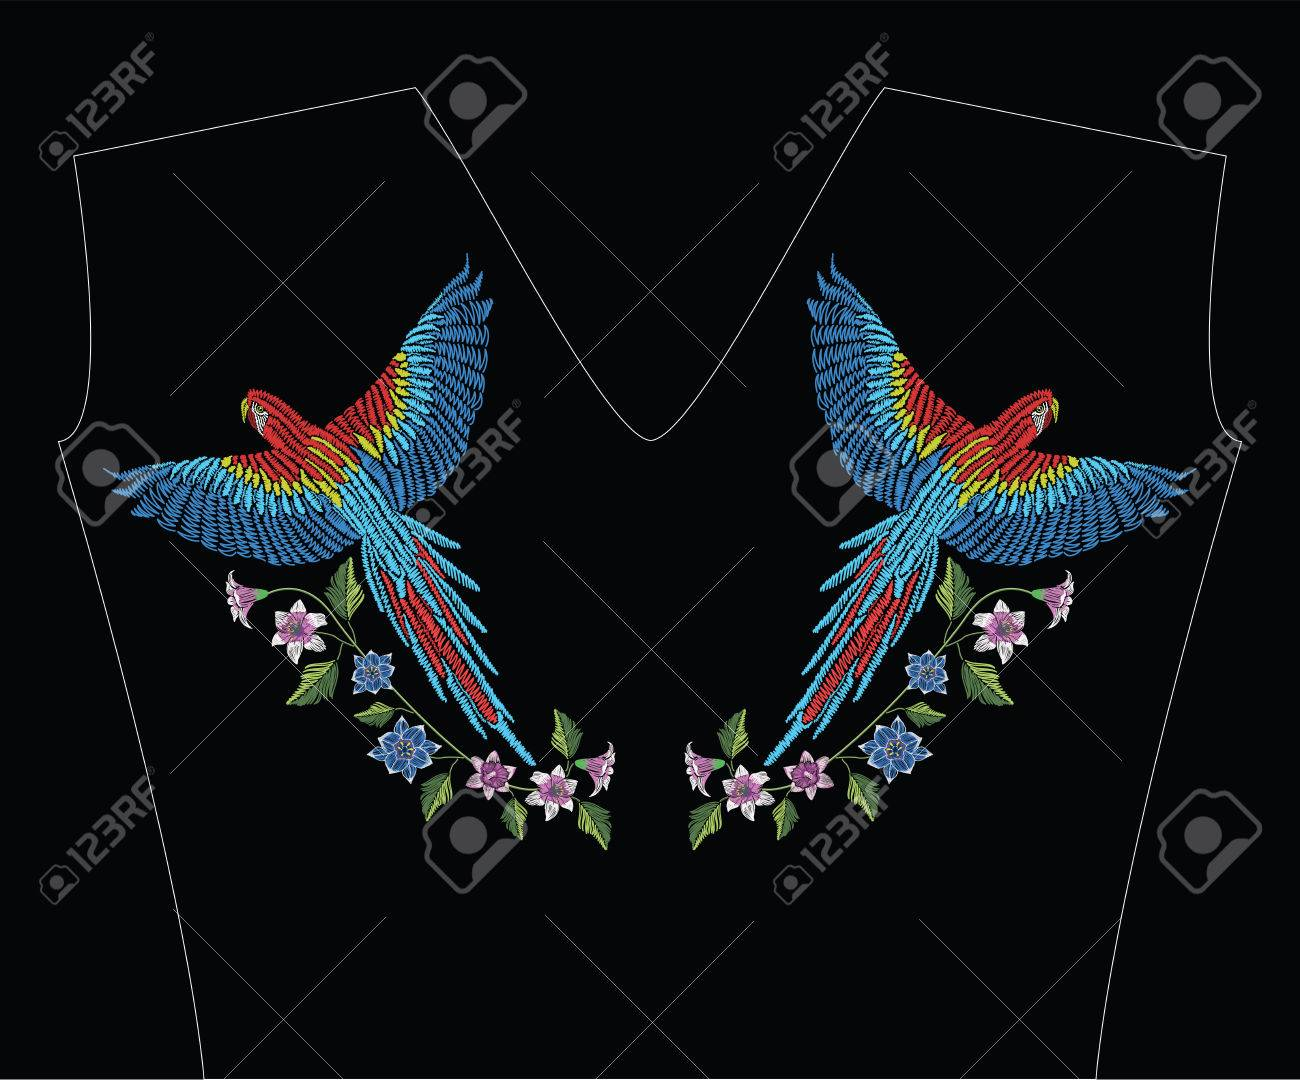 Macaw ara parrot with narcissus, tulip anfd lily flower. Embroidery stitches stylized vector illustration. Traditional floral pattern for textile. Print for fabrics. - 82408364